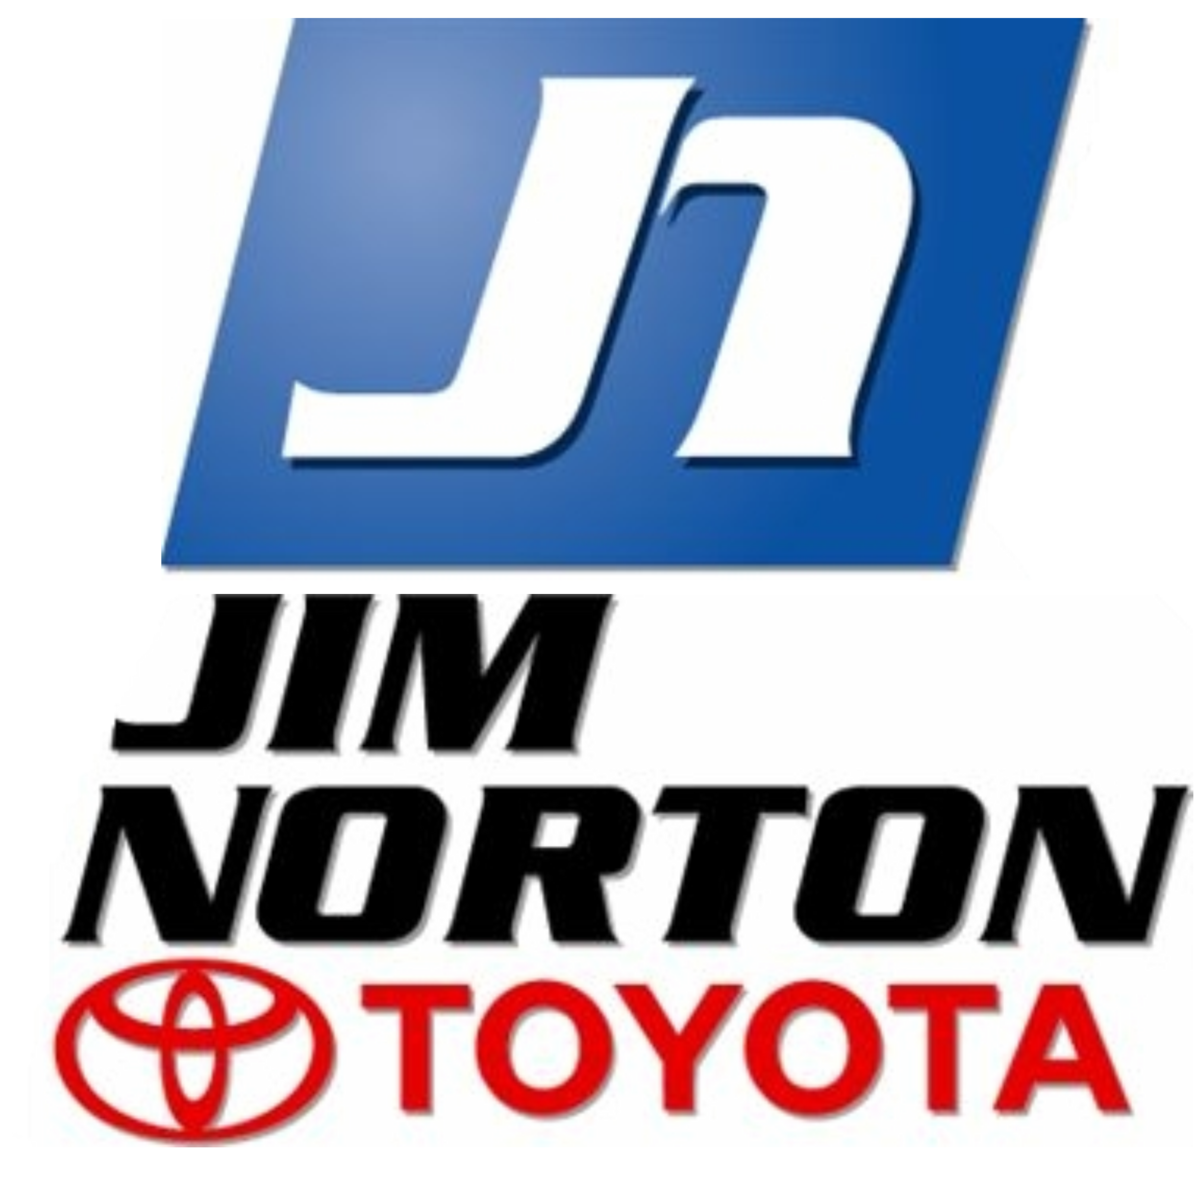 jim norton toyota - tulsa, ok: read consumer reviews, browse used